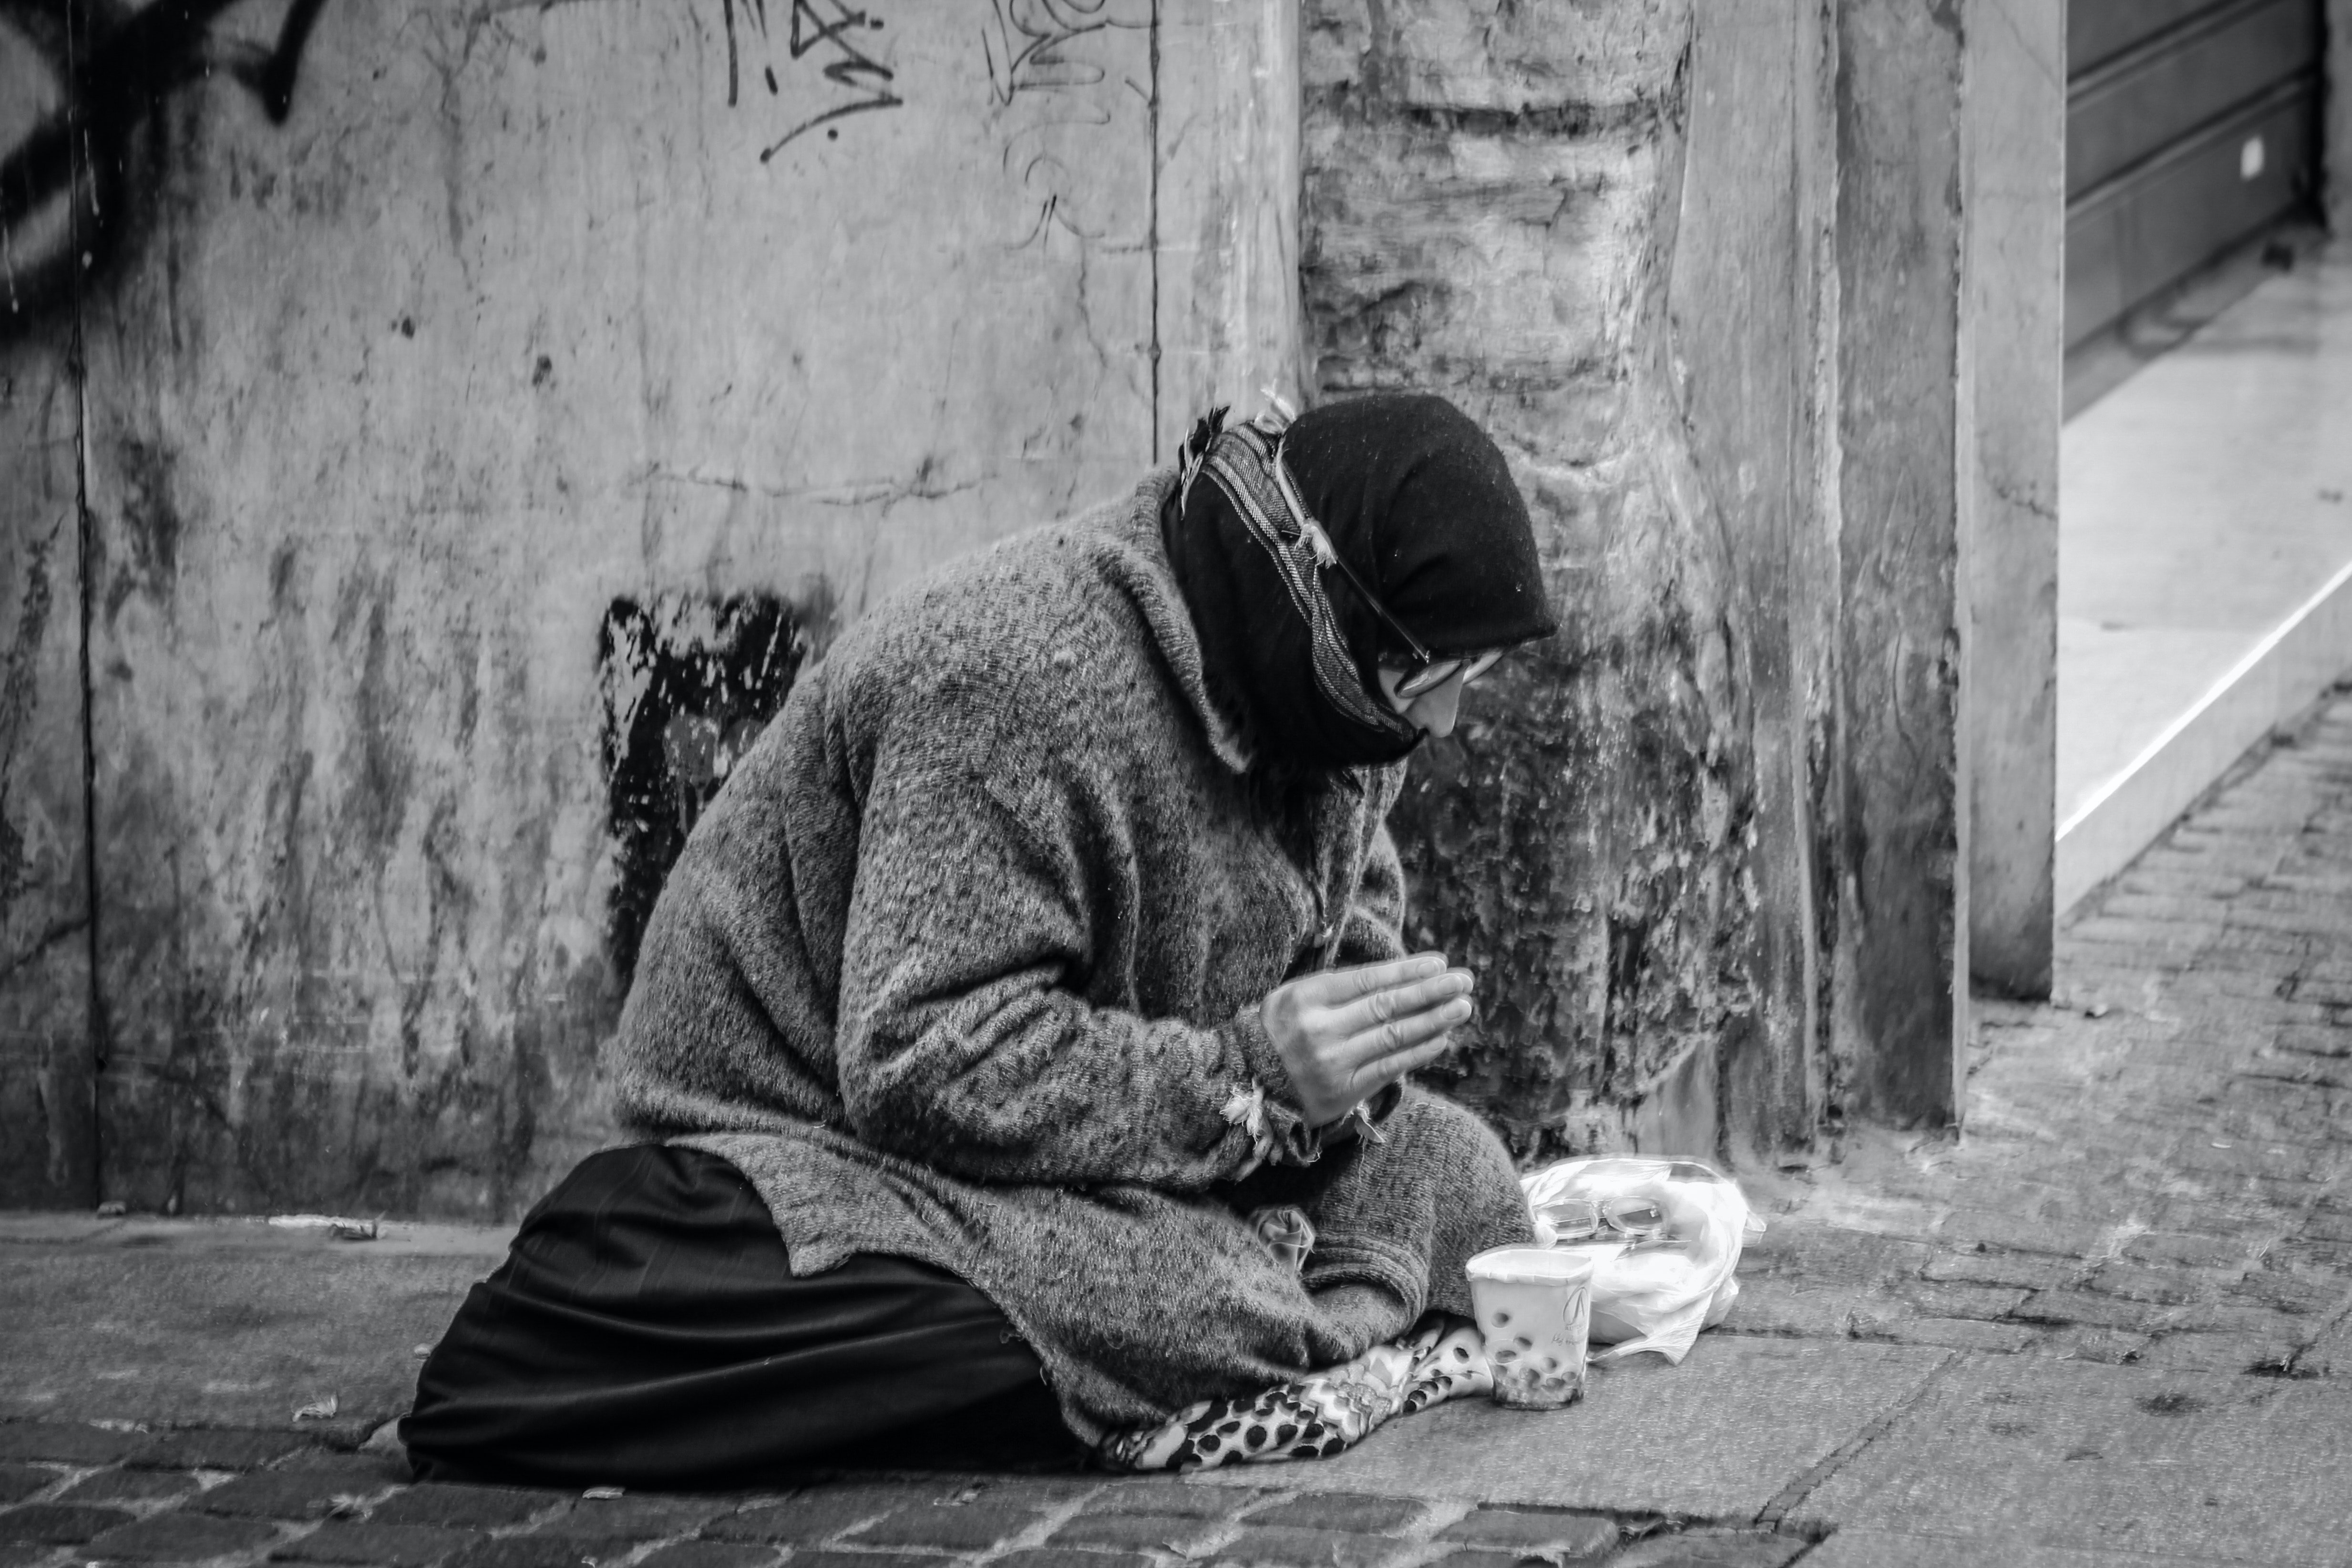 A homeless man on the street.   Pexels/ sergio omassi